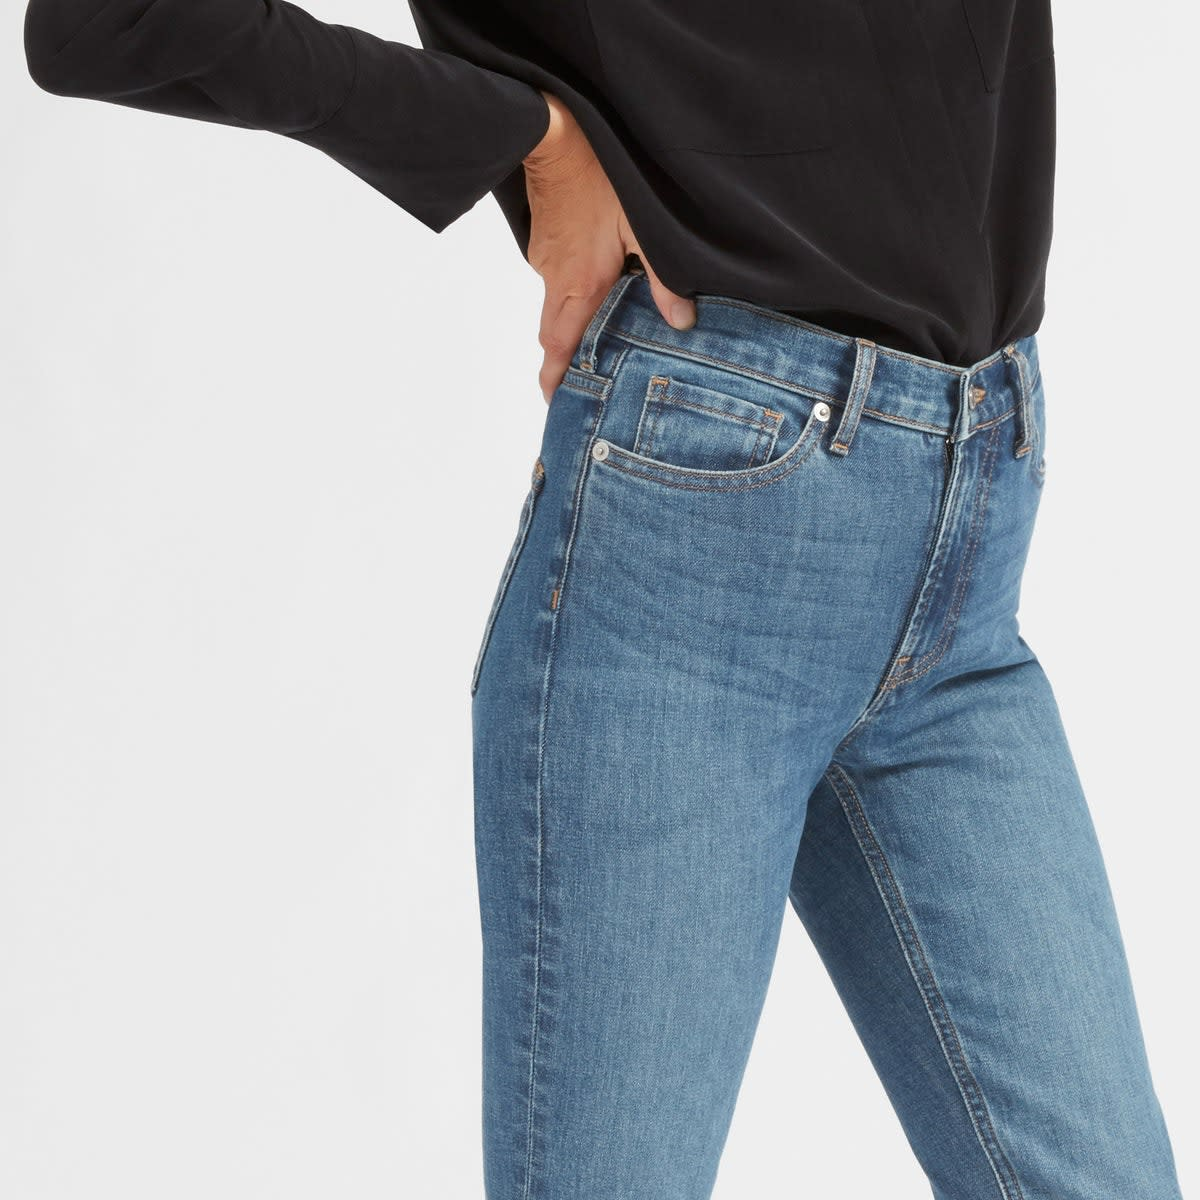 The High-Rise Skinny Jean (Regular), $68